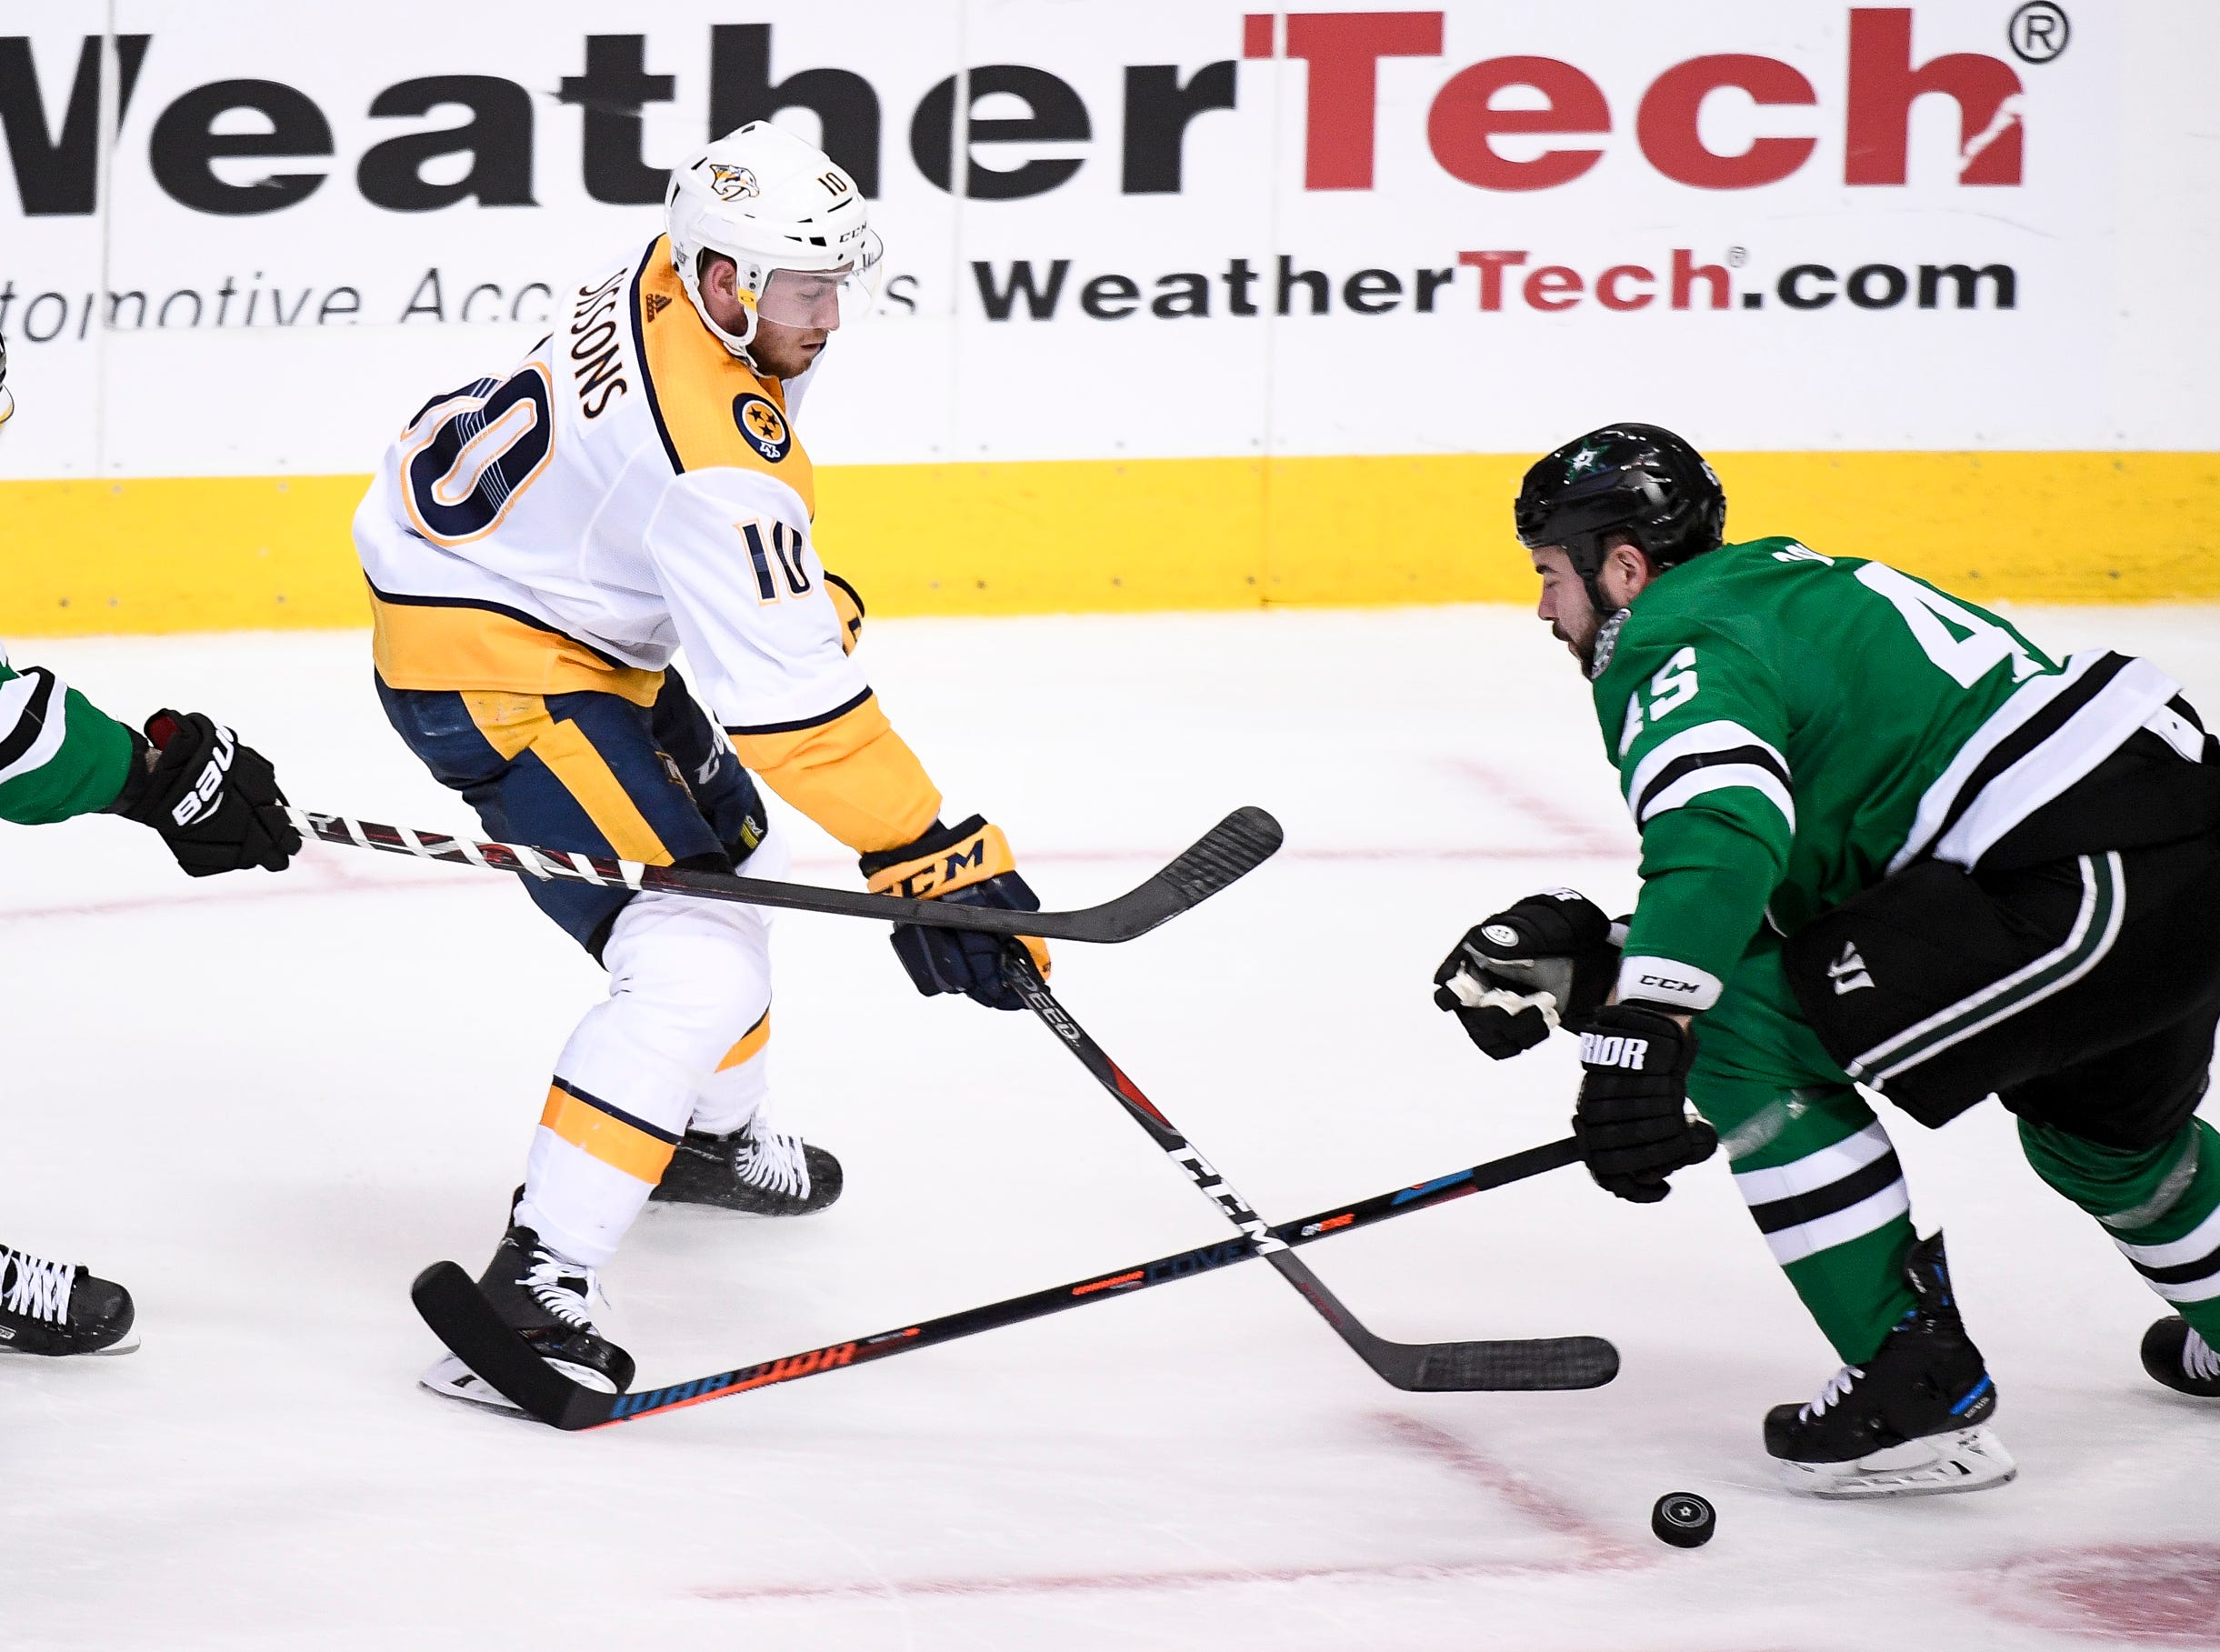 Nashville Predators center Colton Sissons (10) skates through Dallas Stars center Tyler Seguin (91) and defenseman Roman Polak (45) during the third period of the divisional semifinal game at the American Airlines Center in Dallas, Texas., Monday, April 15, 2019.